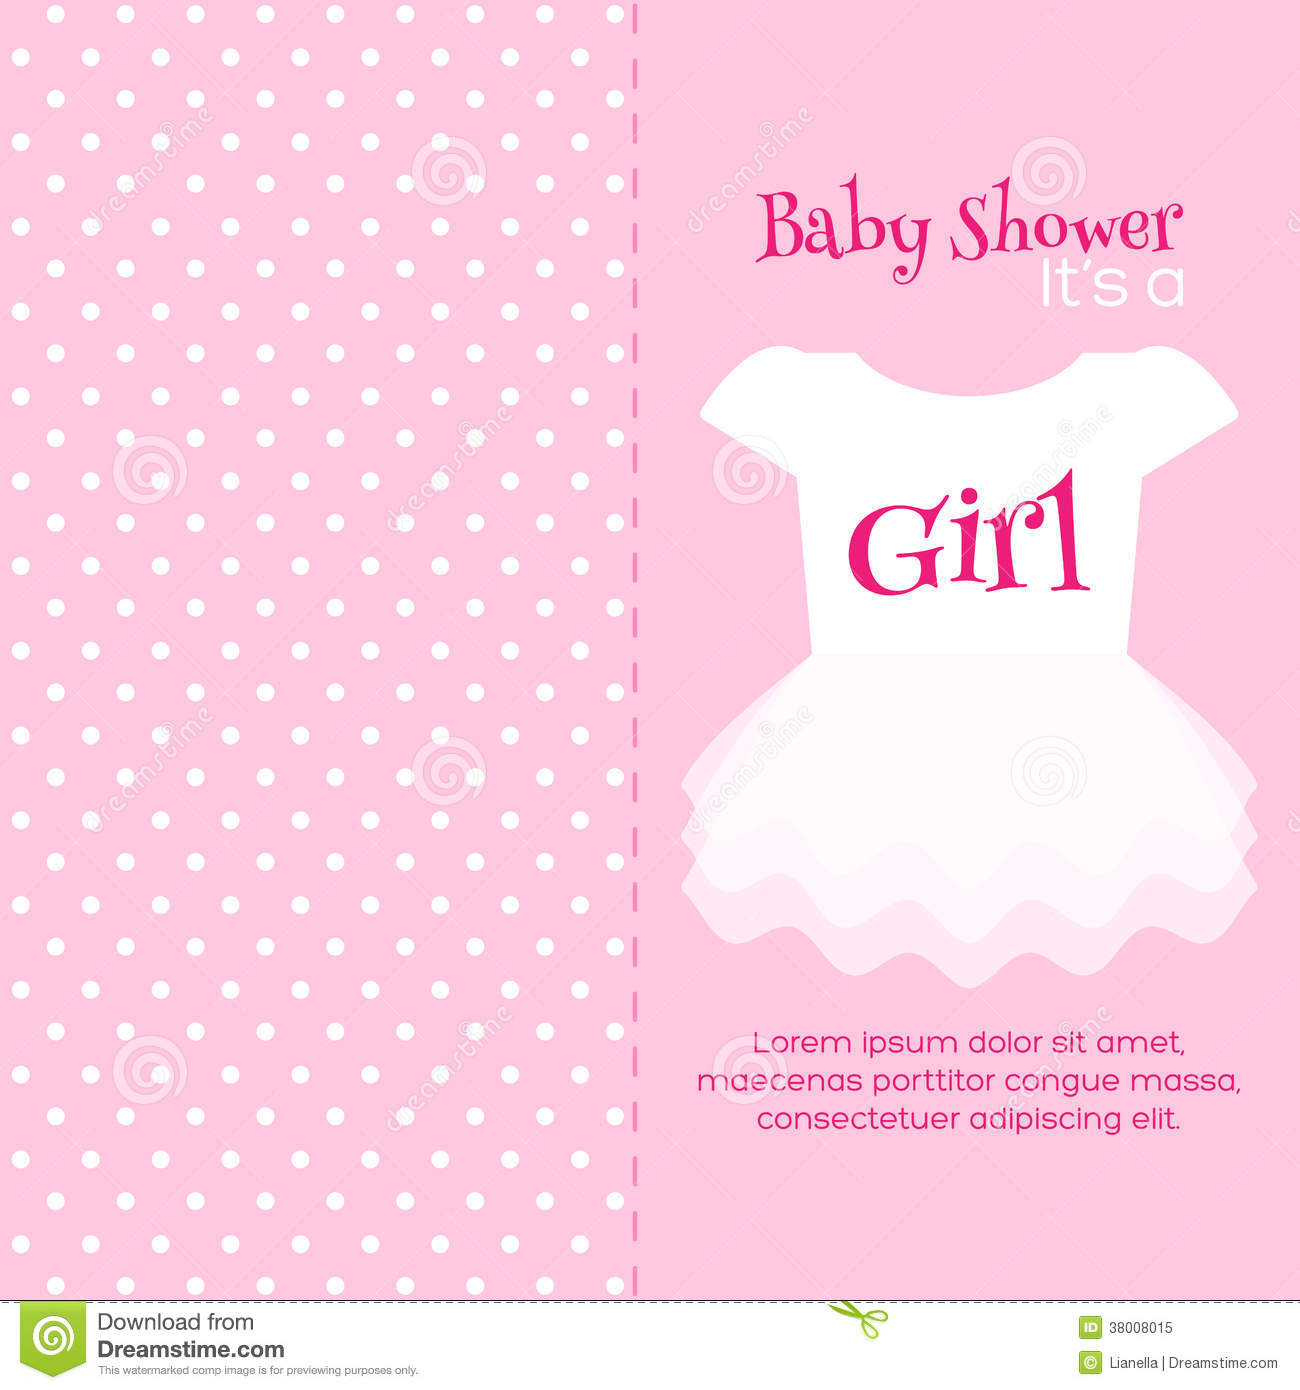 download baby shower invitation template stock vector illustration of decorative cute 38008015